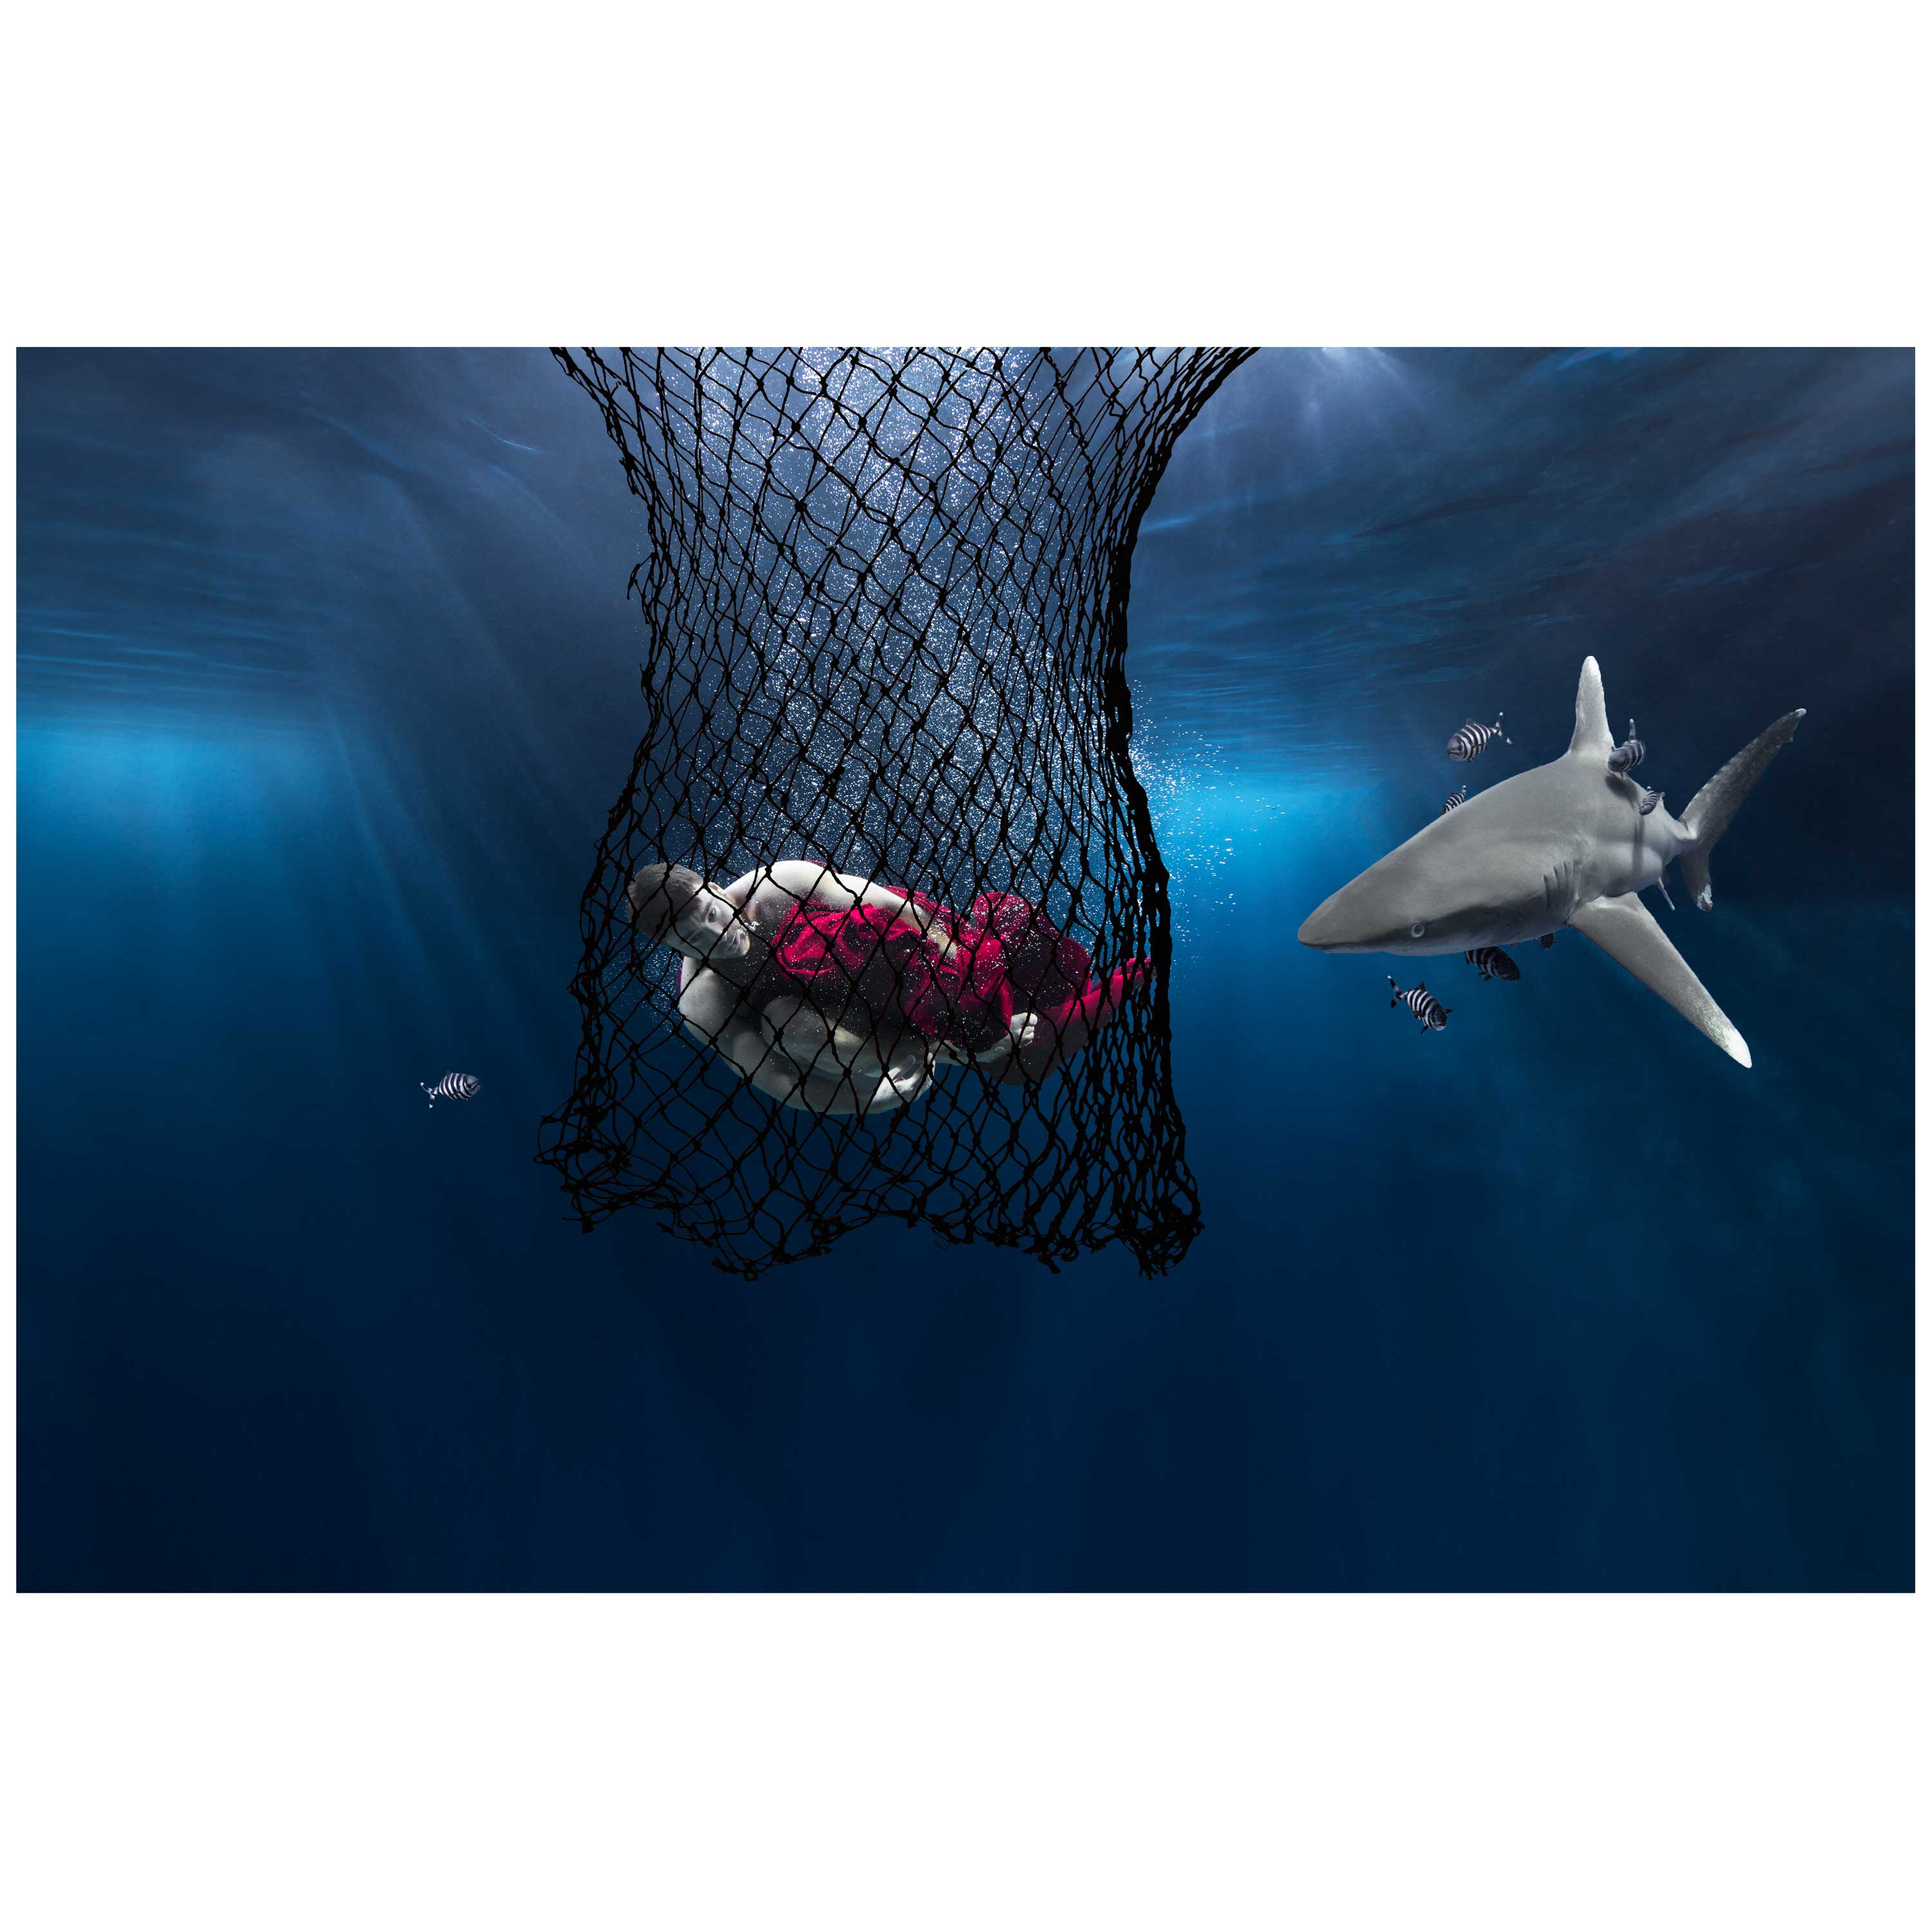 Underwater-Editorial-Photography-by-Maya-Shark